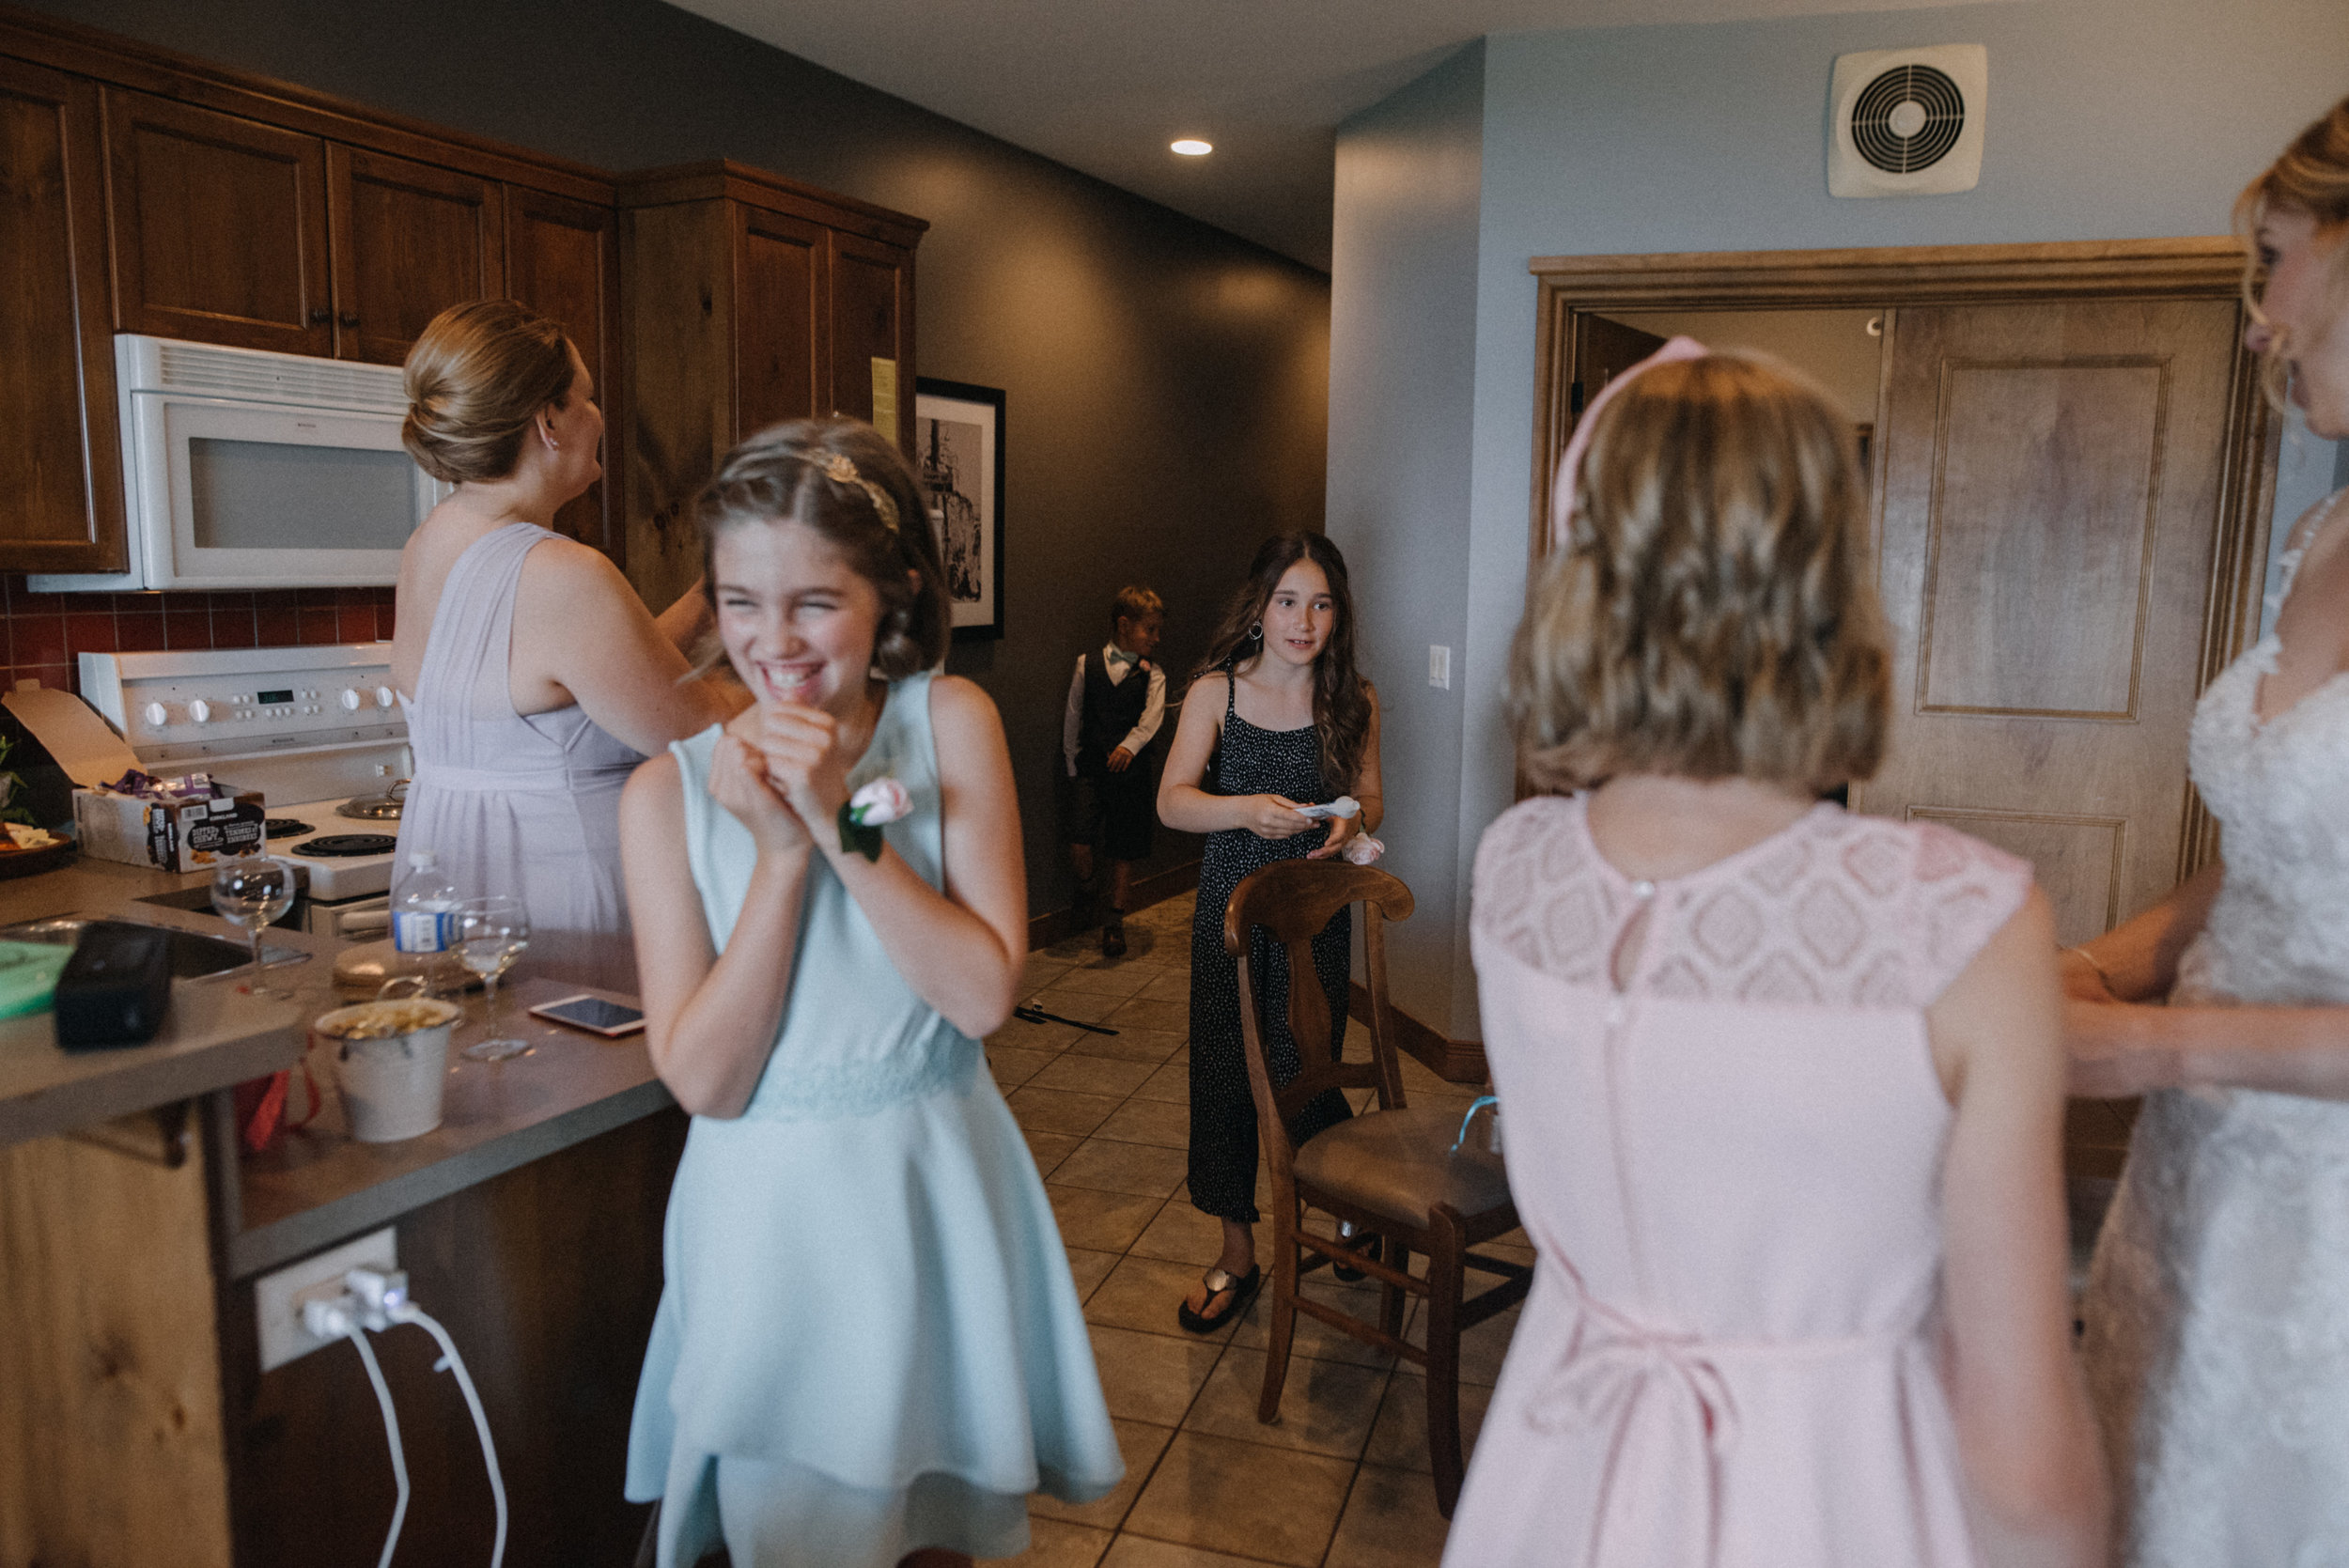 gatineau_photographe_mariage_ottawa_wedding_photography_documentary_candid_unposed_lifestyle_photography_photographie_613_family_famille (27).jpg